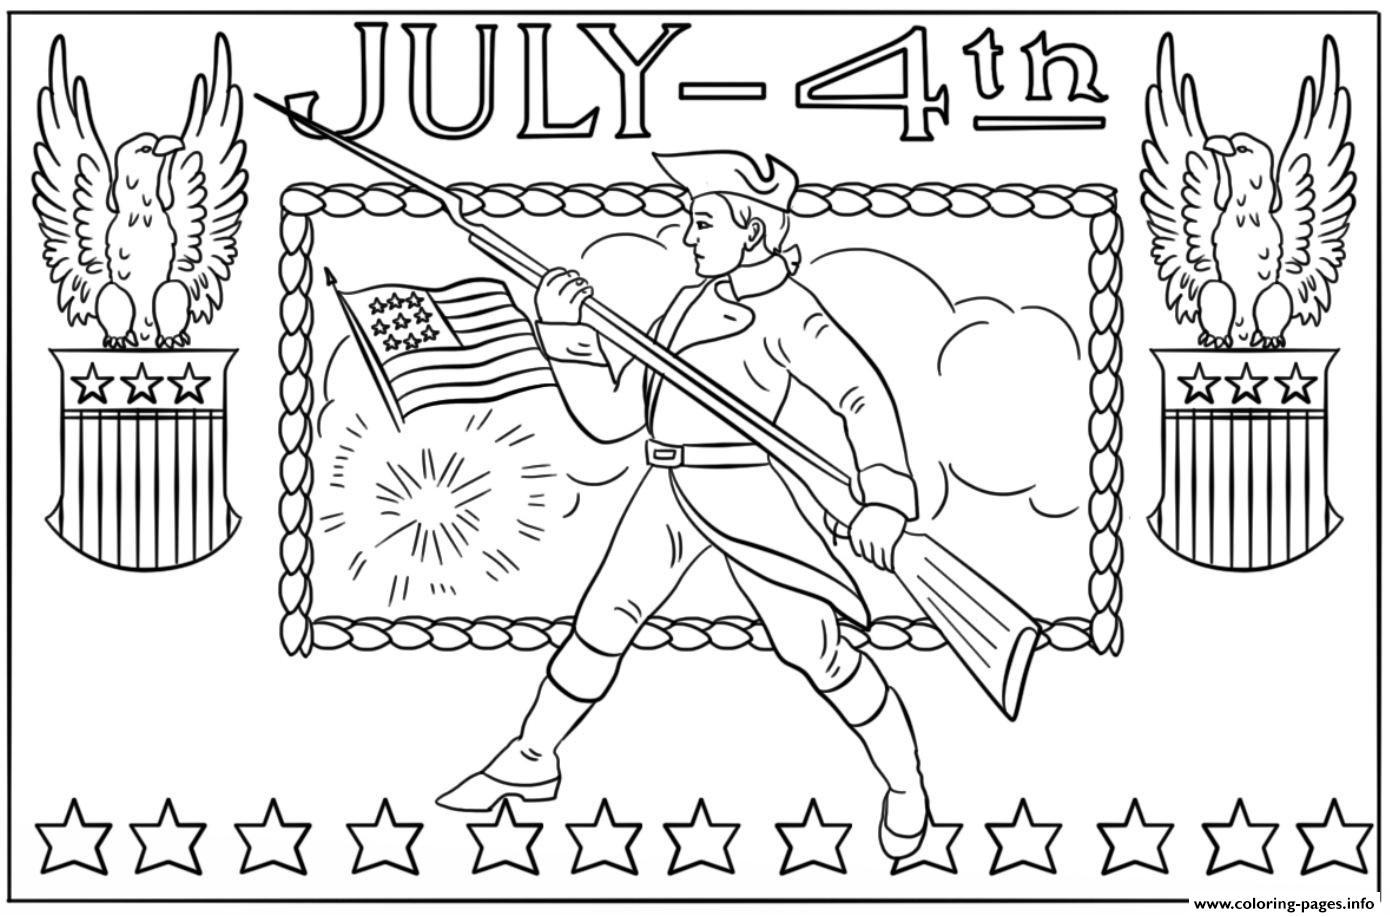 independence day coloring pictures independence day coloring pages coloring pages kids pictures independence coloring day